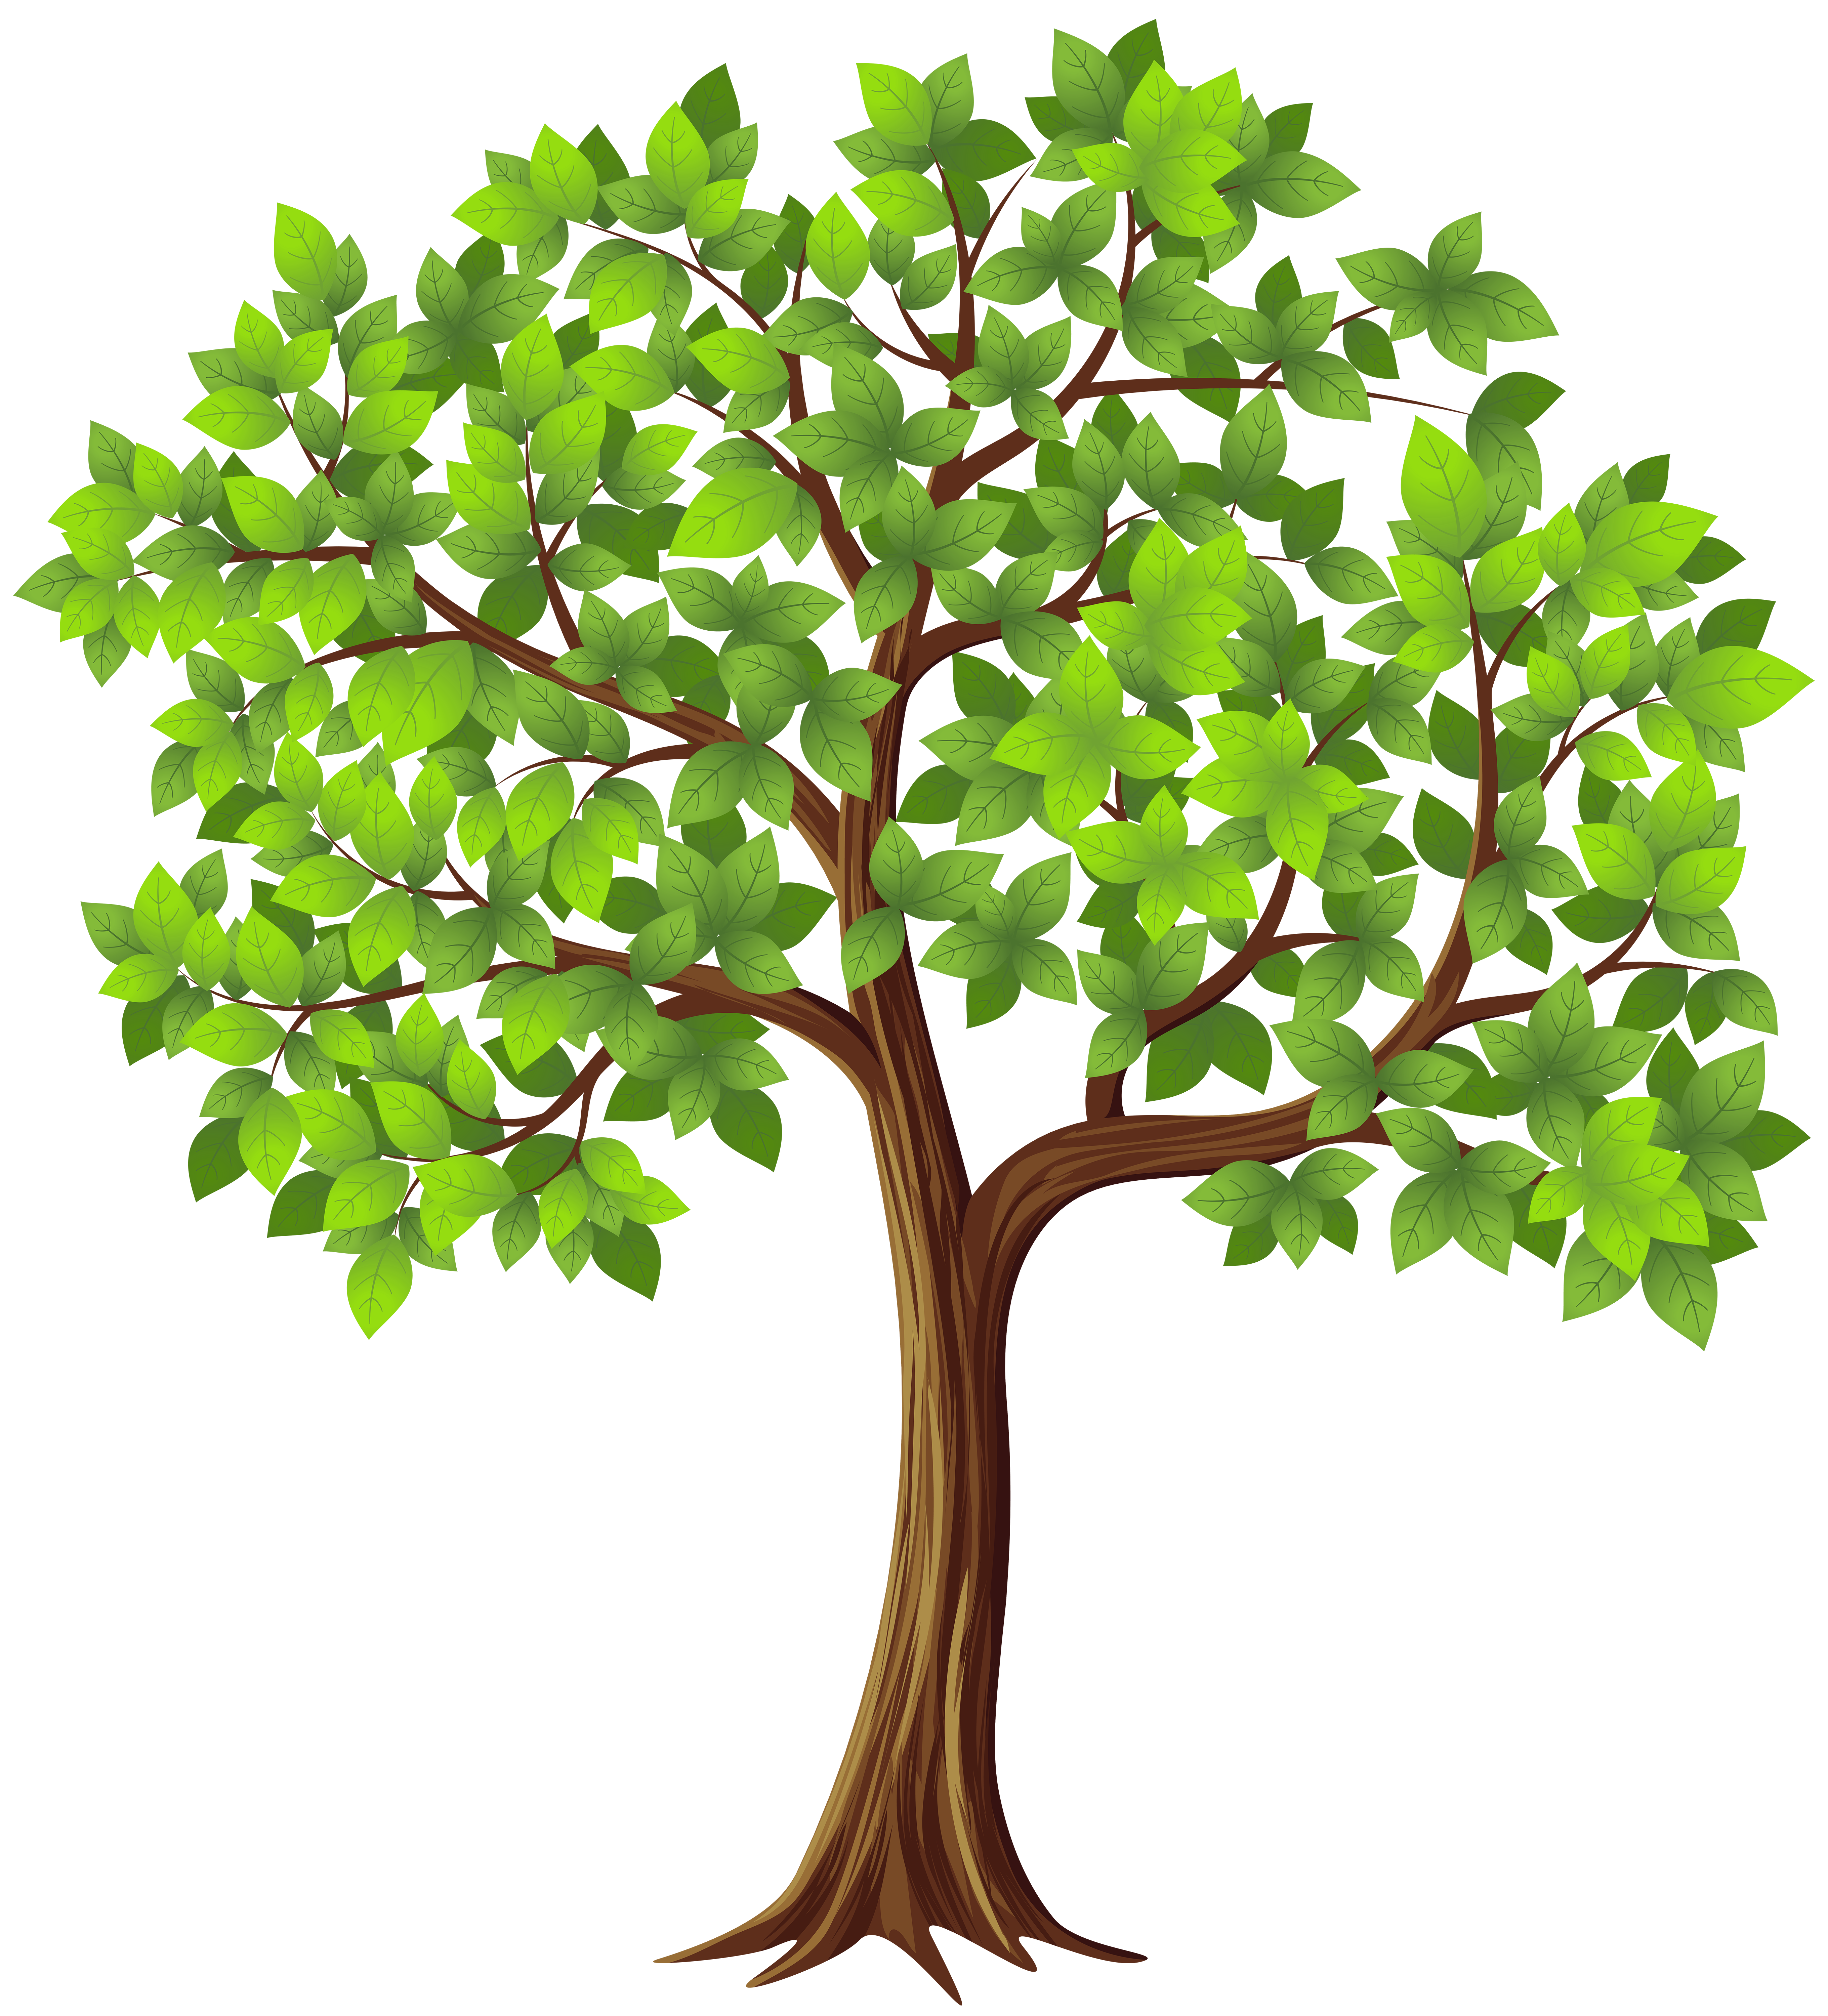 royalty free download Tree clipart. Png transparent clip art.